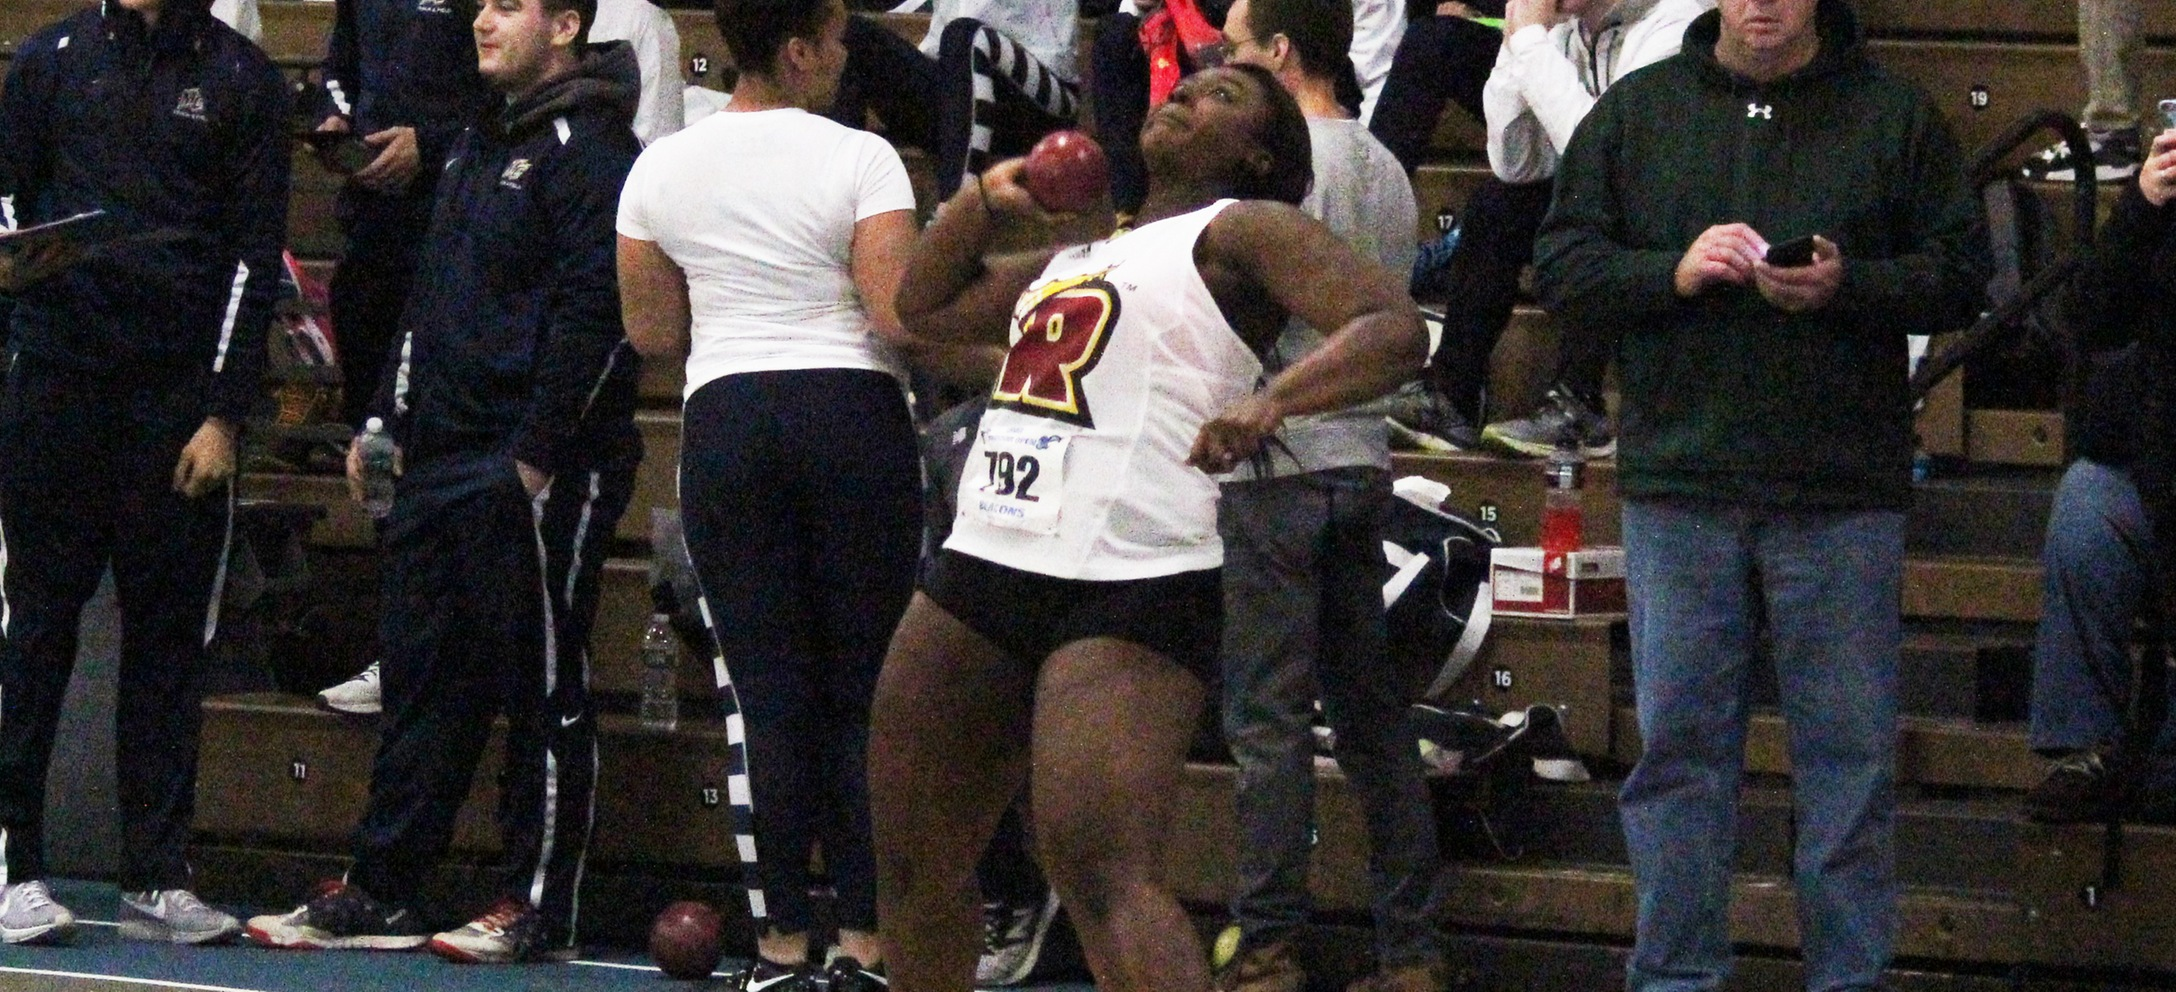 Akanegbu Delivers A Pair Of Top 20 Throws At New England Championships